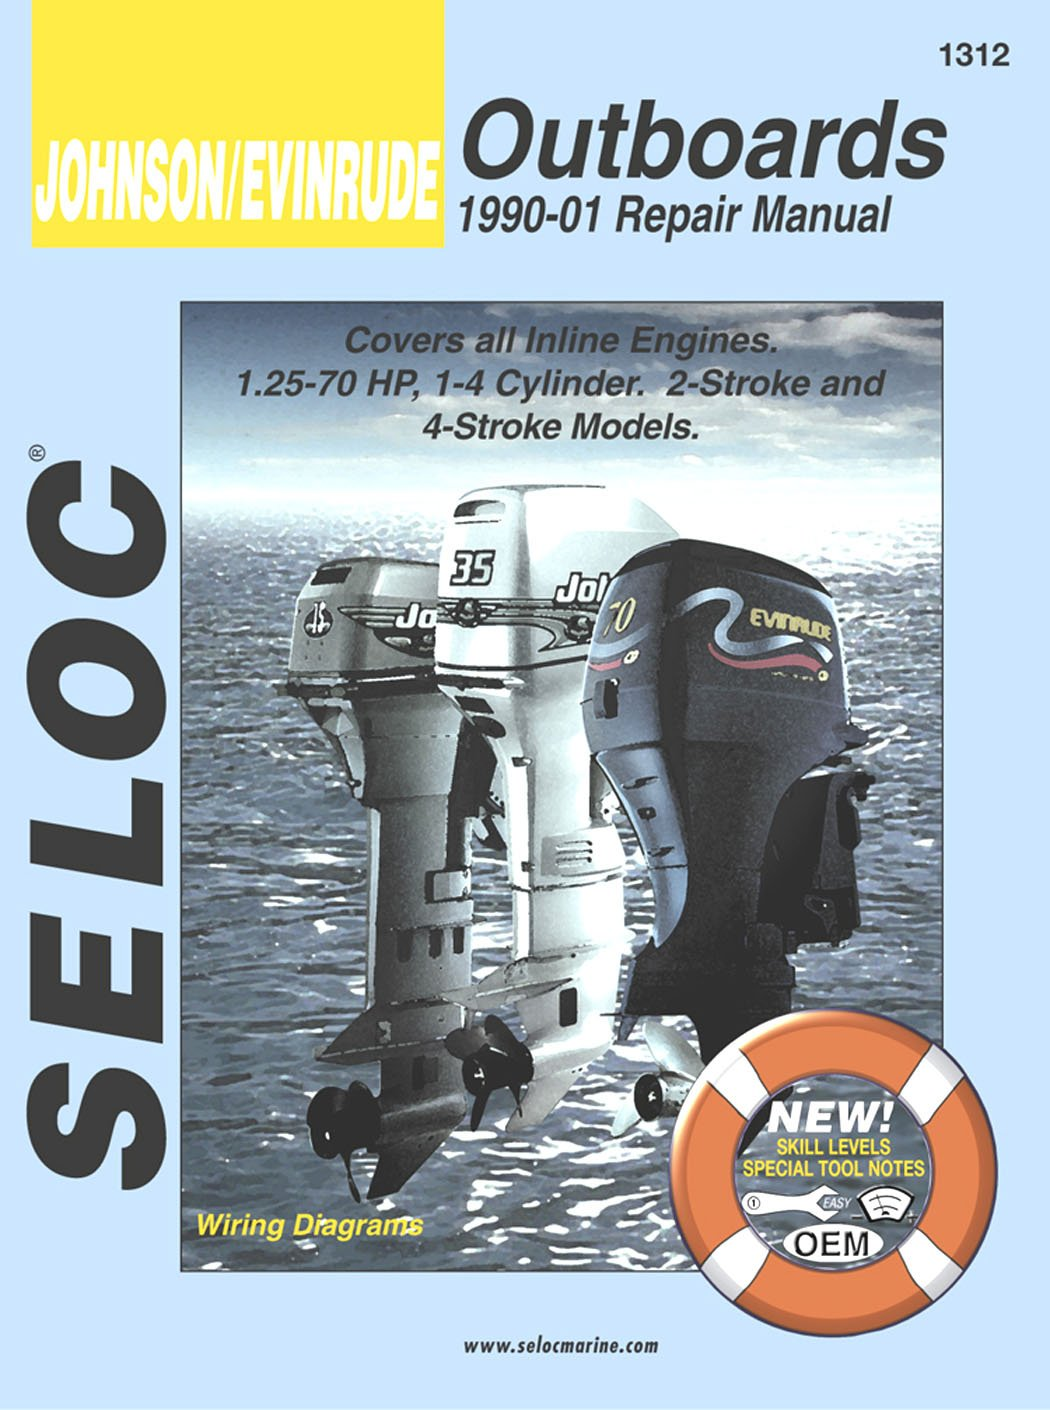 Sierra International Seloc Manual 18 01312 Johnson 35 Hp Outboard Wiring Diagram Evinrude 25 Also Outboards Repair 1990 2001 125 70 1 4 Cylinder 2 Stroke Model